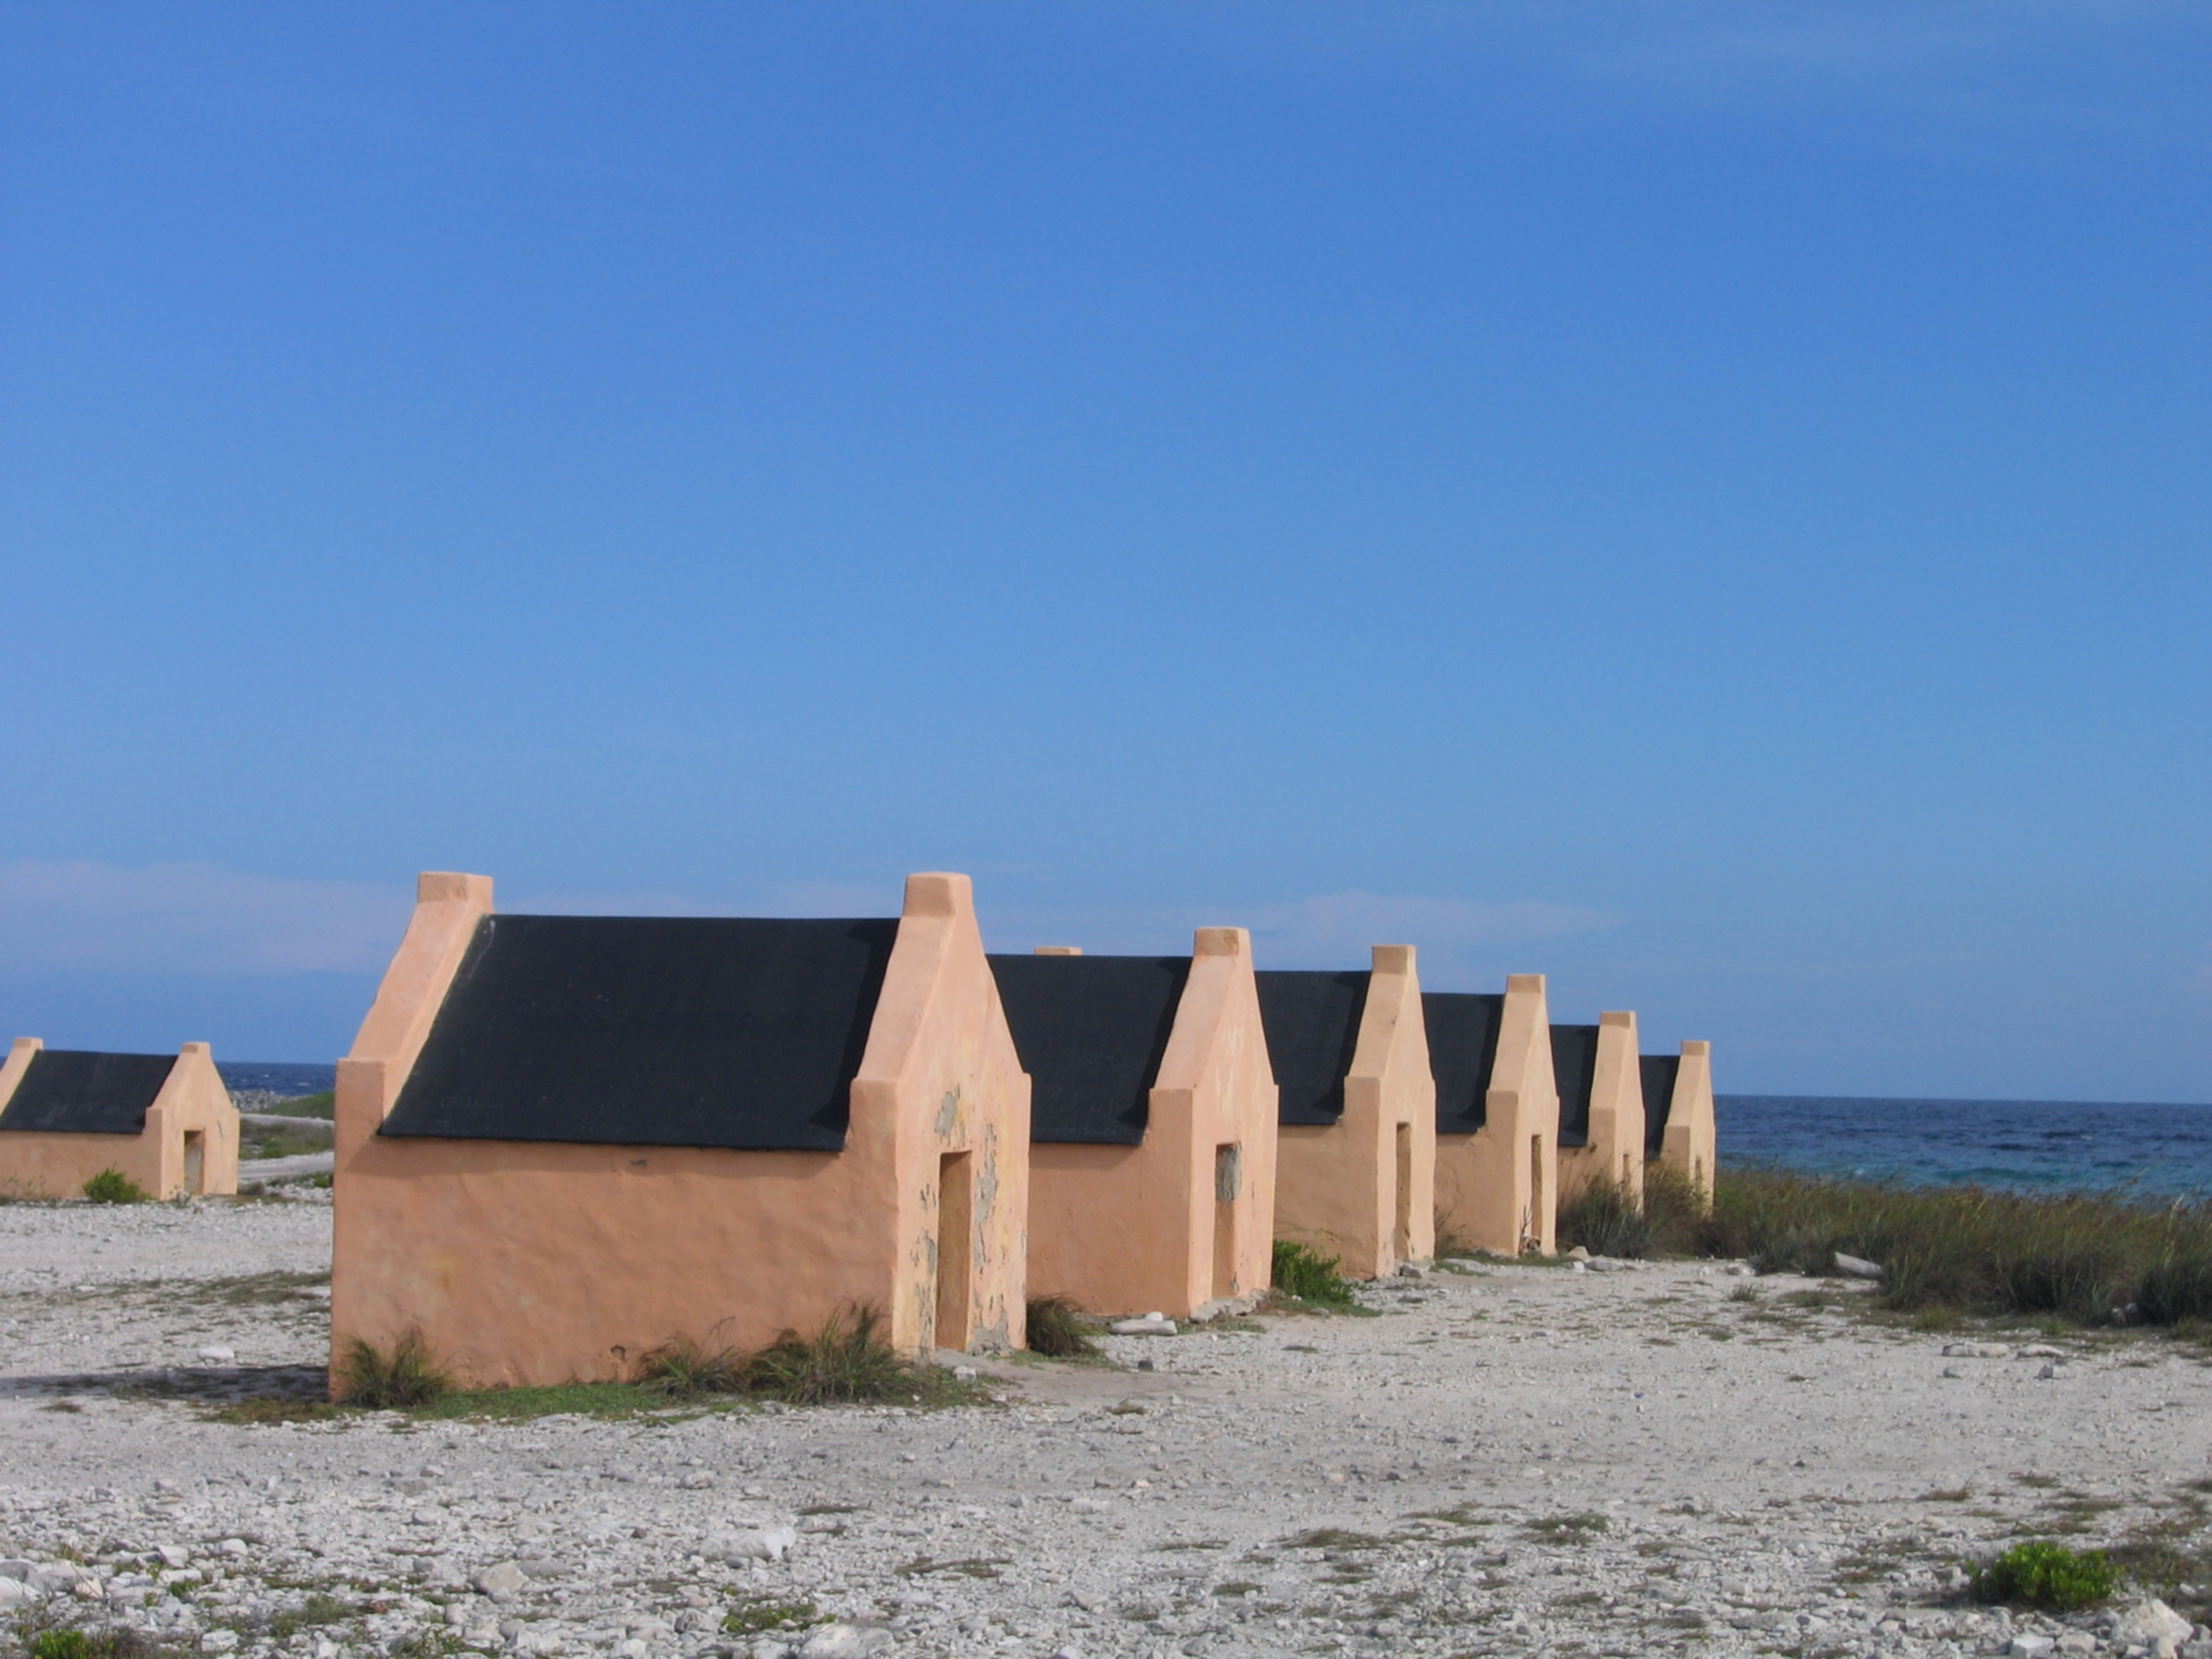 Bonaire_Red_Slave_Huts.jpg